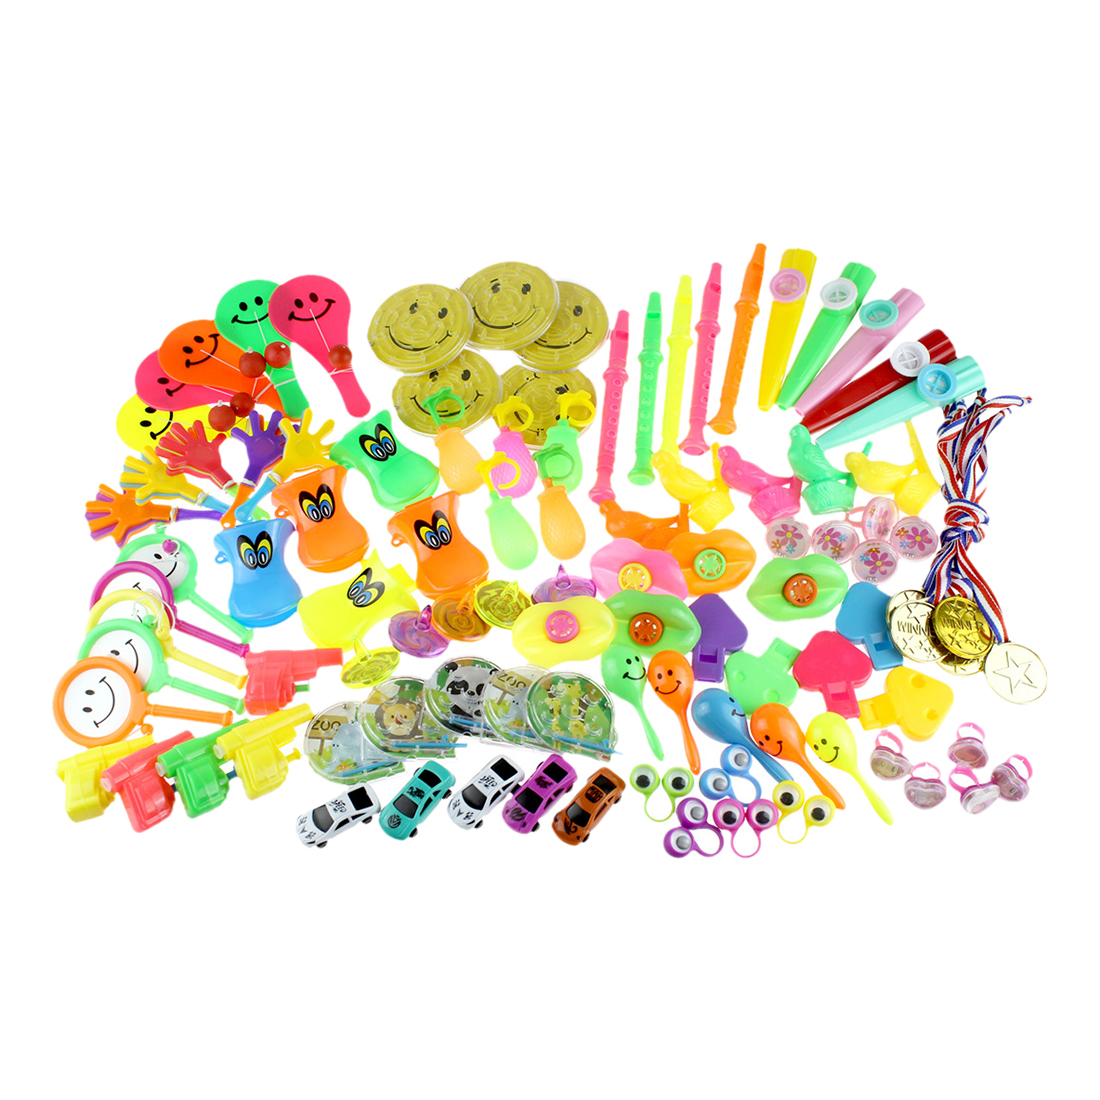 100Pcs Children Small Toy Prop Set For Party 20 Type Mixed Christmas Gift Toys For Kids